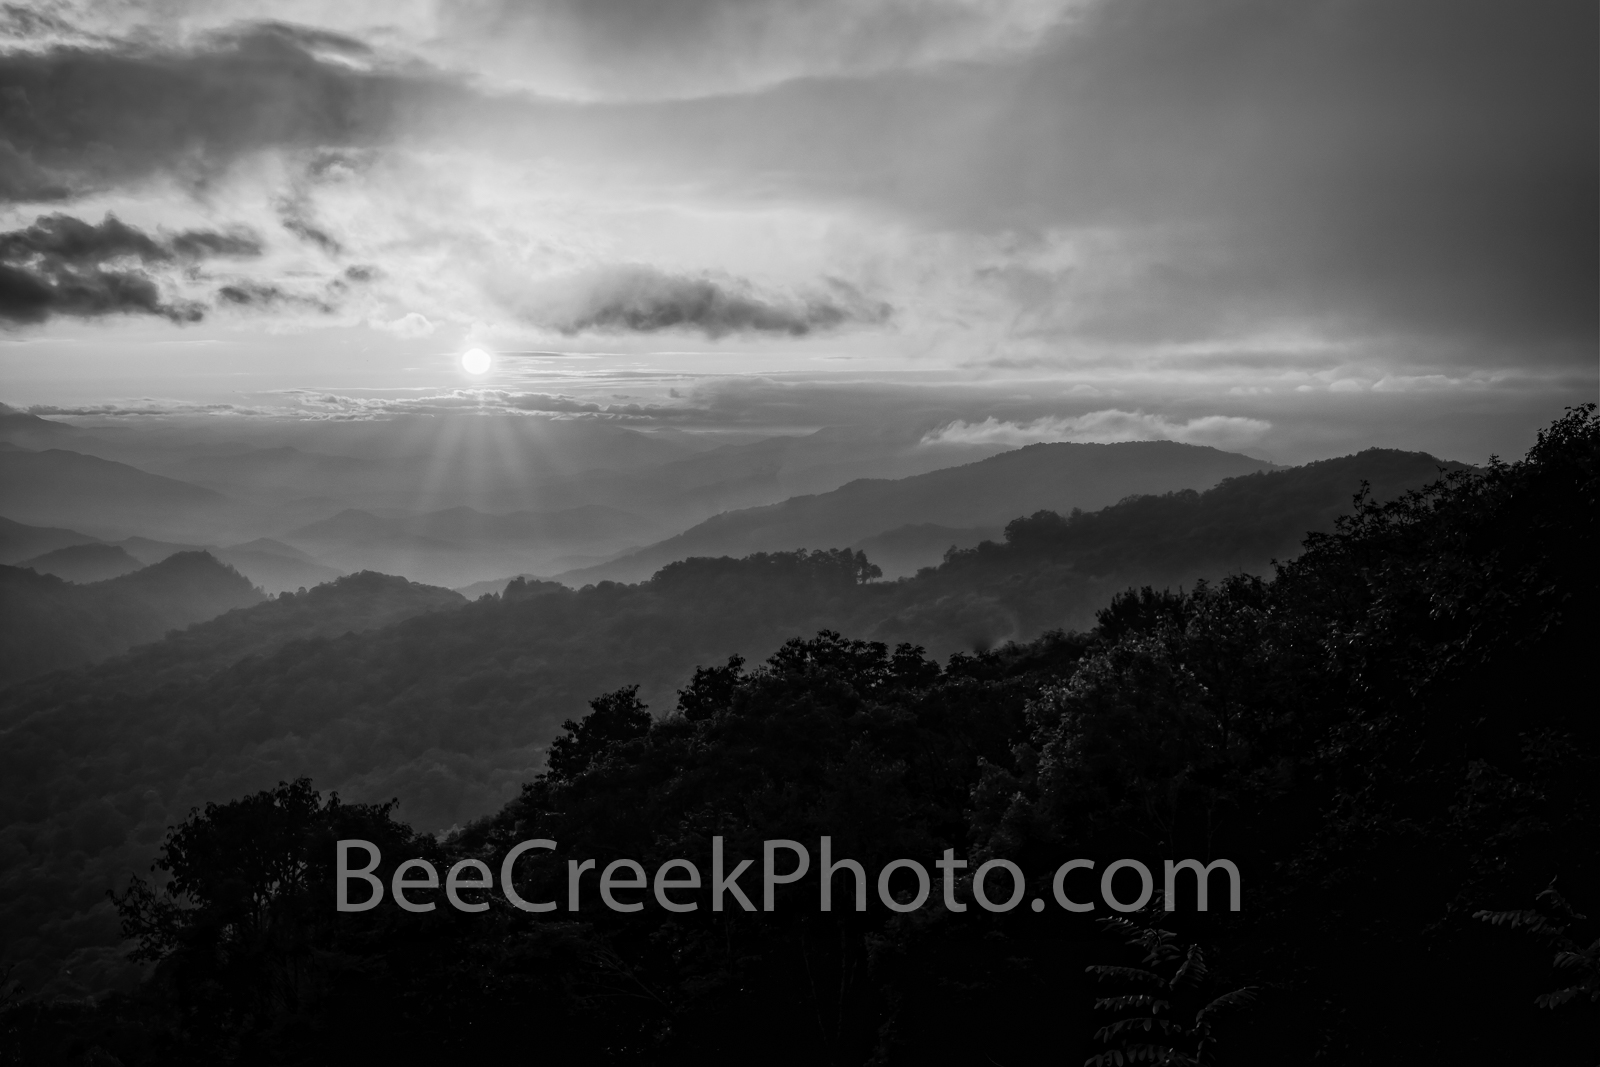 Blue Ridge Mountain Sunset  B W - Another capture of the blue ridge mountains at sunset with this smokie haze which the Smoky...